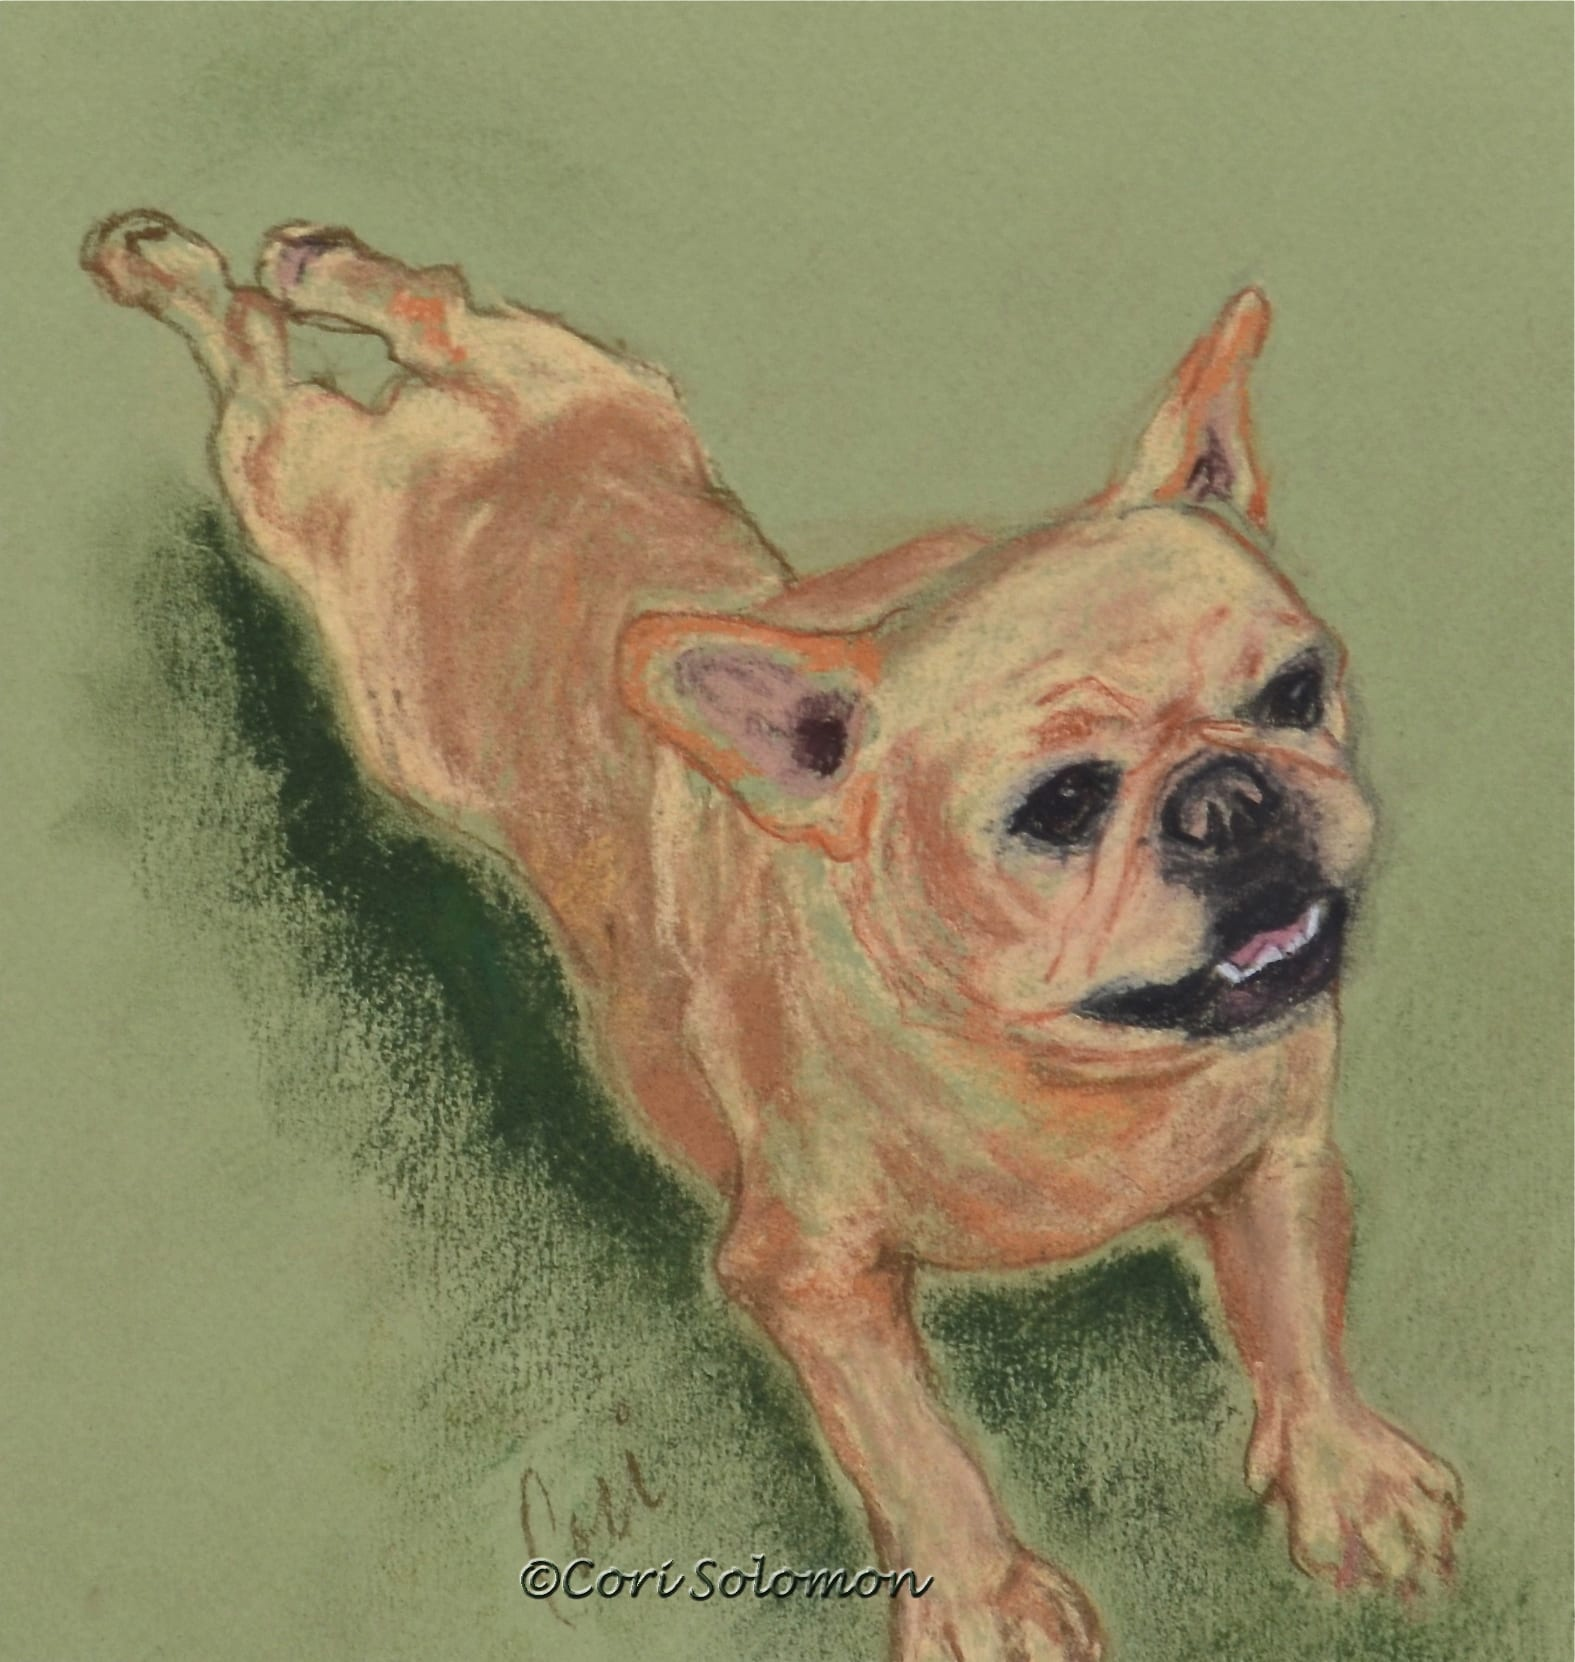 French Bulldog: The Frog Dance – For Sale